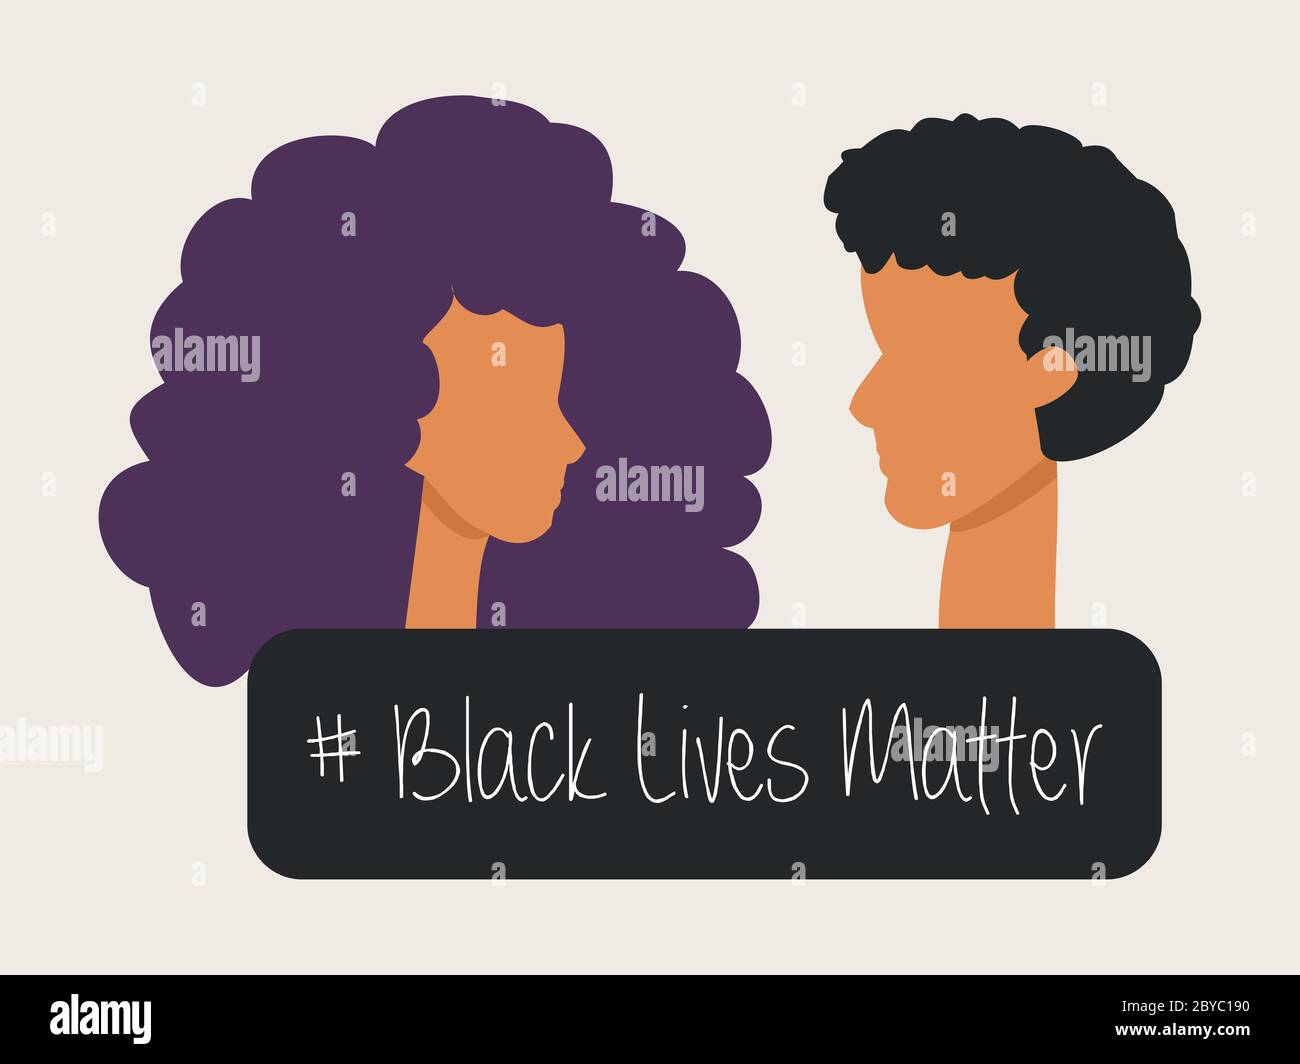 Illustration of a afro american woman and man victims of racism - Black Lives Matter Stock Photo